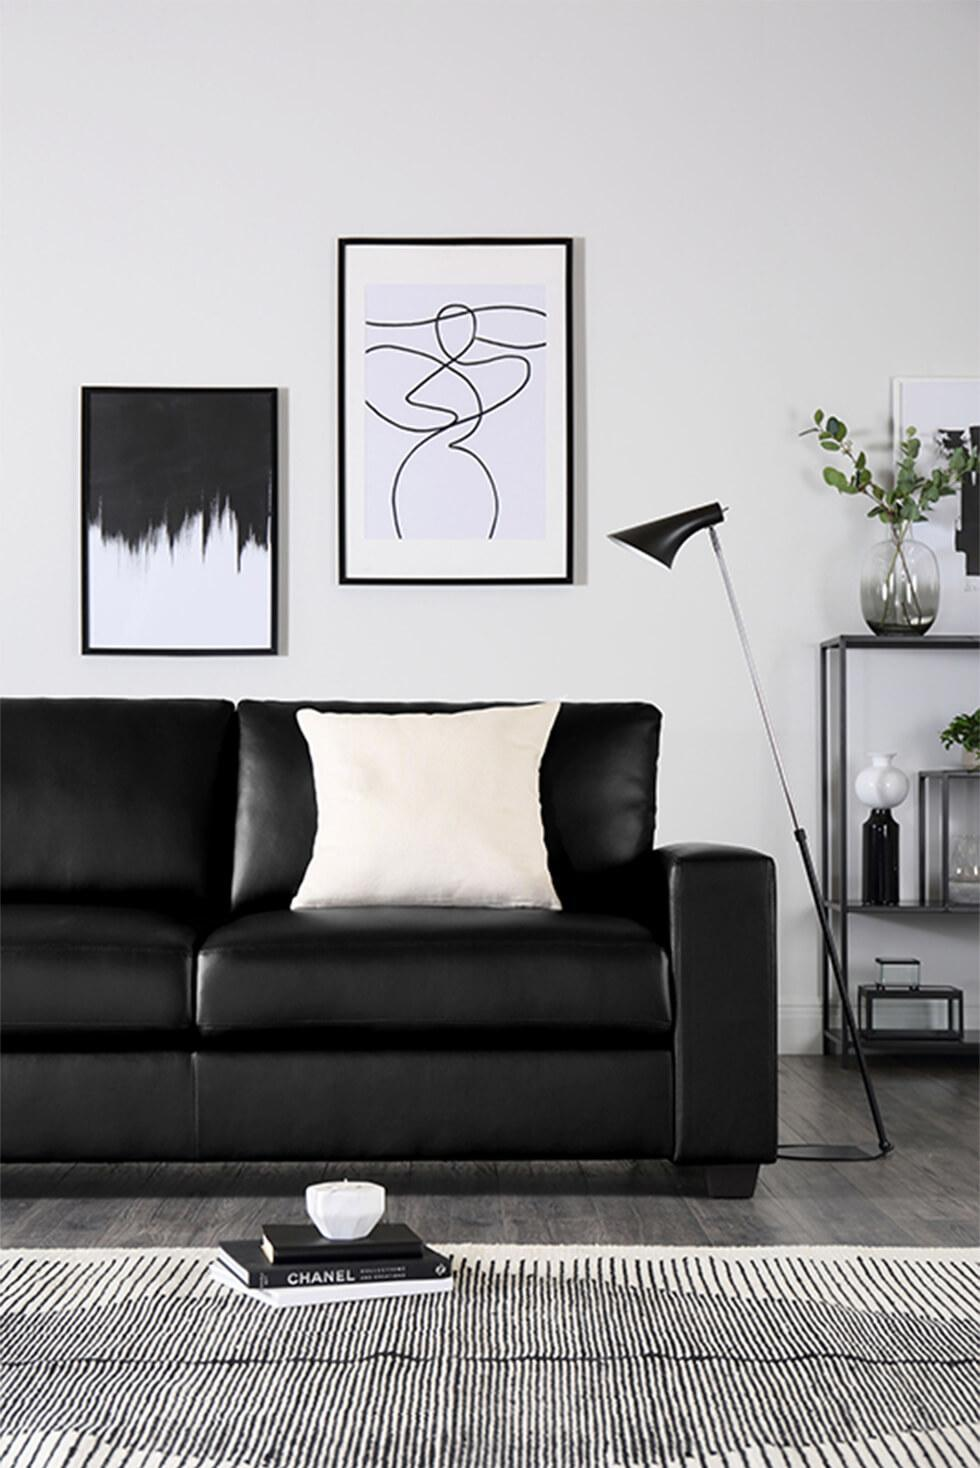 Clean monochrome living room with black leather sofa, framed art, striped rug and white cushion